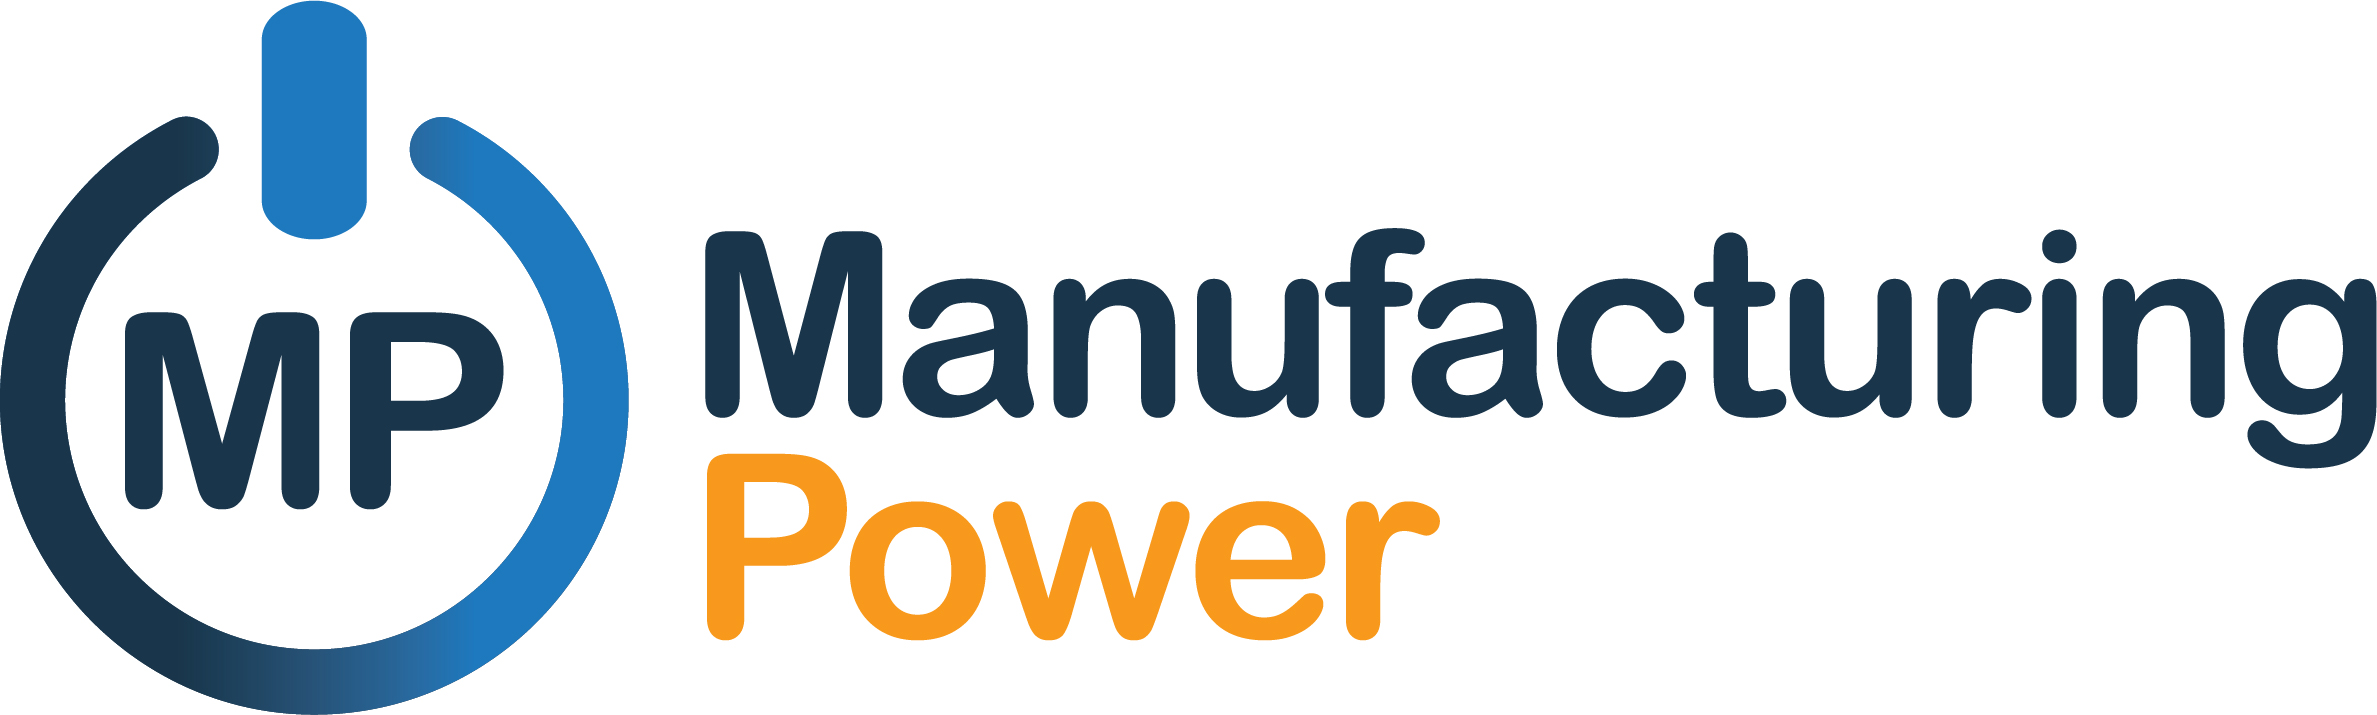 Small Manufacturers Answer Reshoring at Competitive Prices According to Manufacturing Power